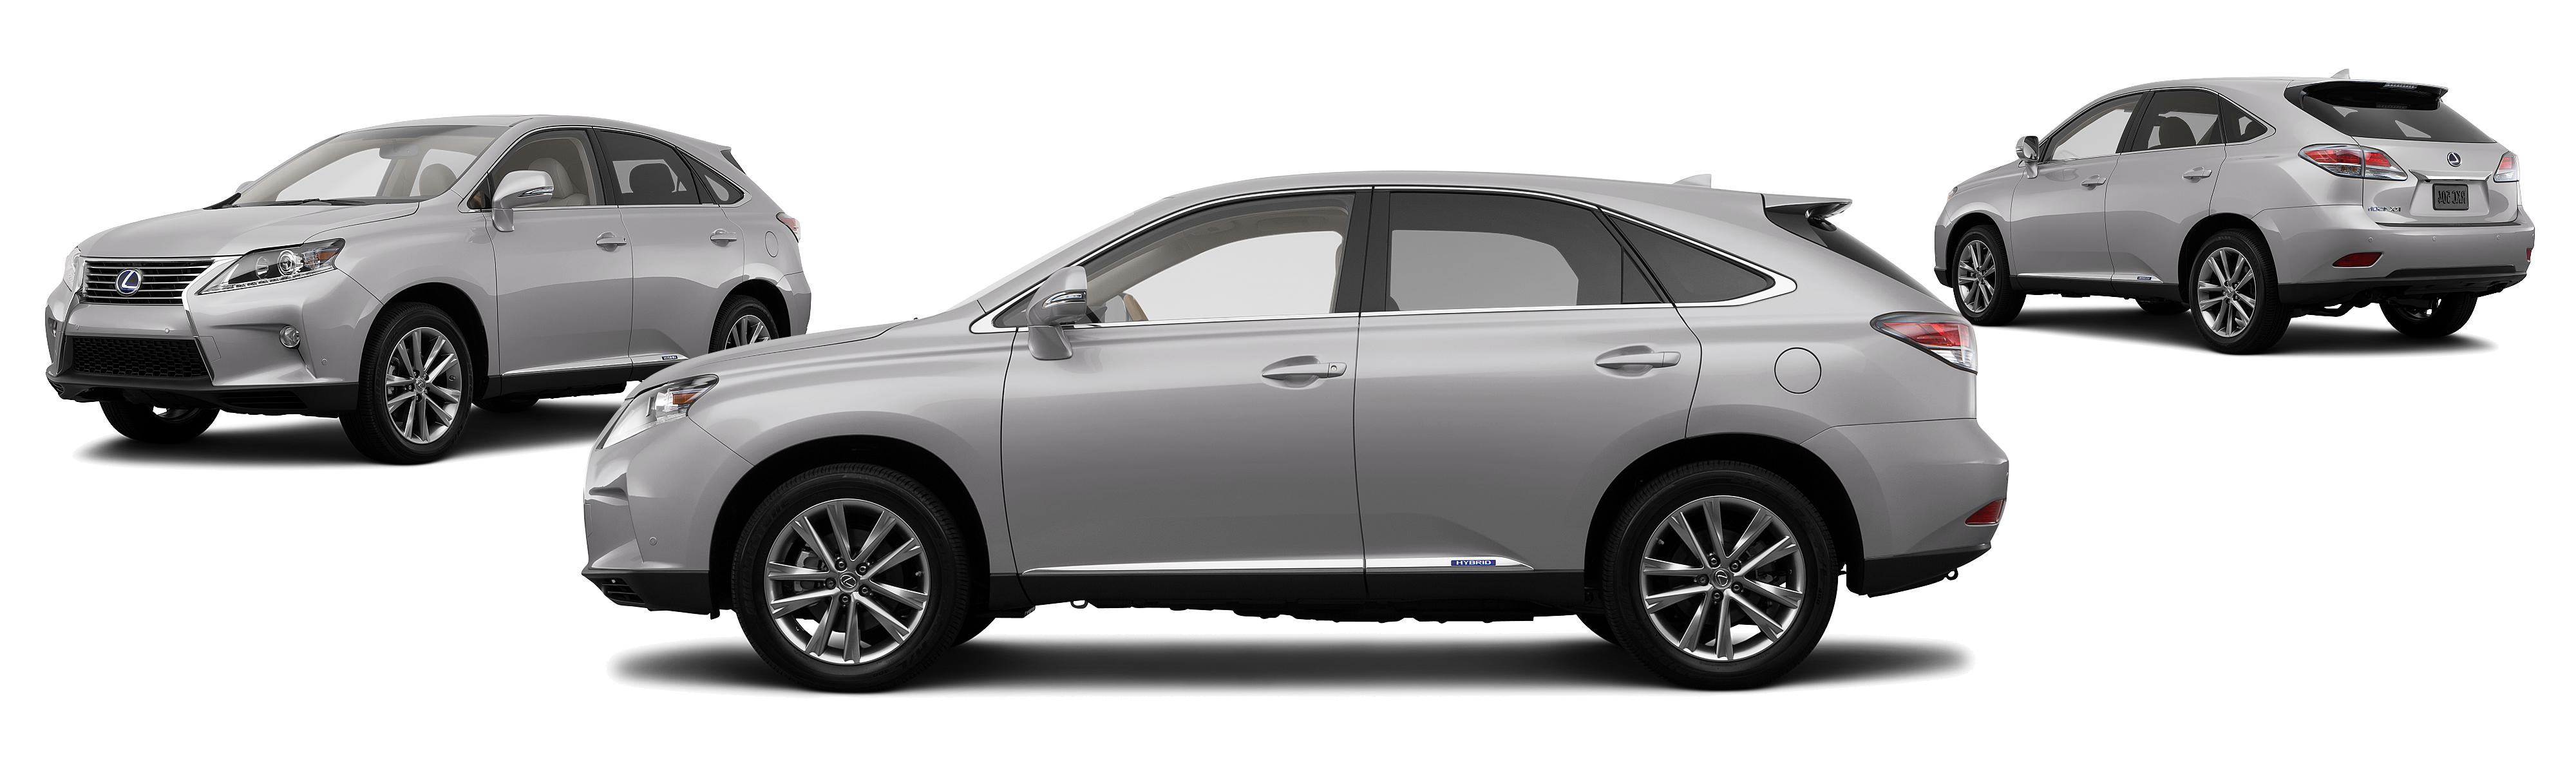 2014 Lexus RX 450h 4dr SUV Research GrooveCar